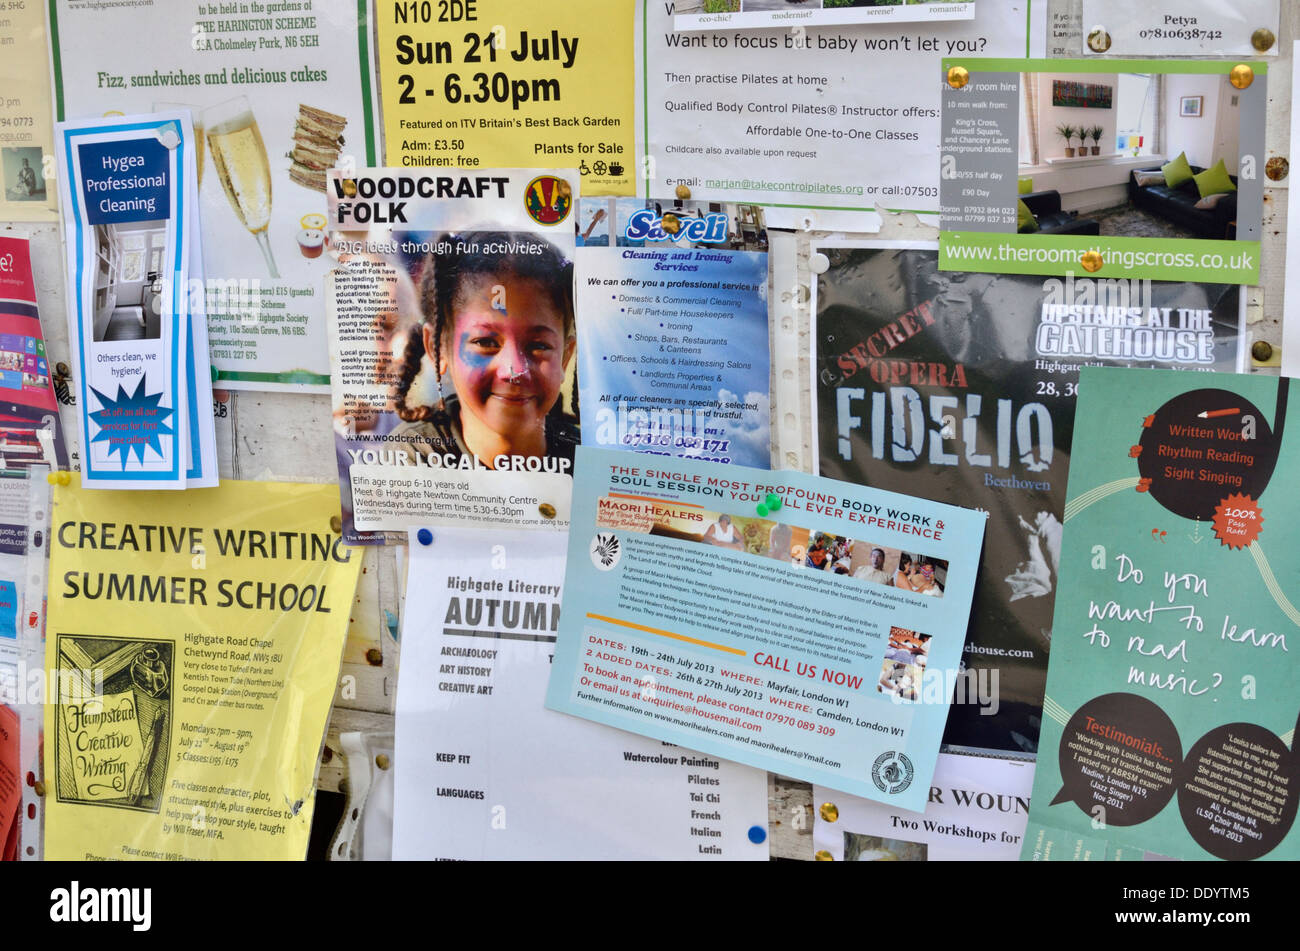 London local community notice board - Stock Image